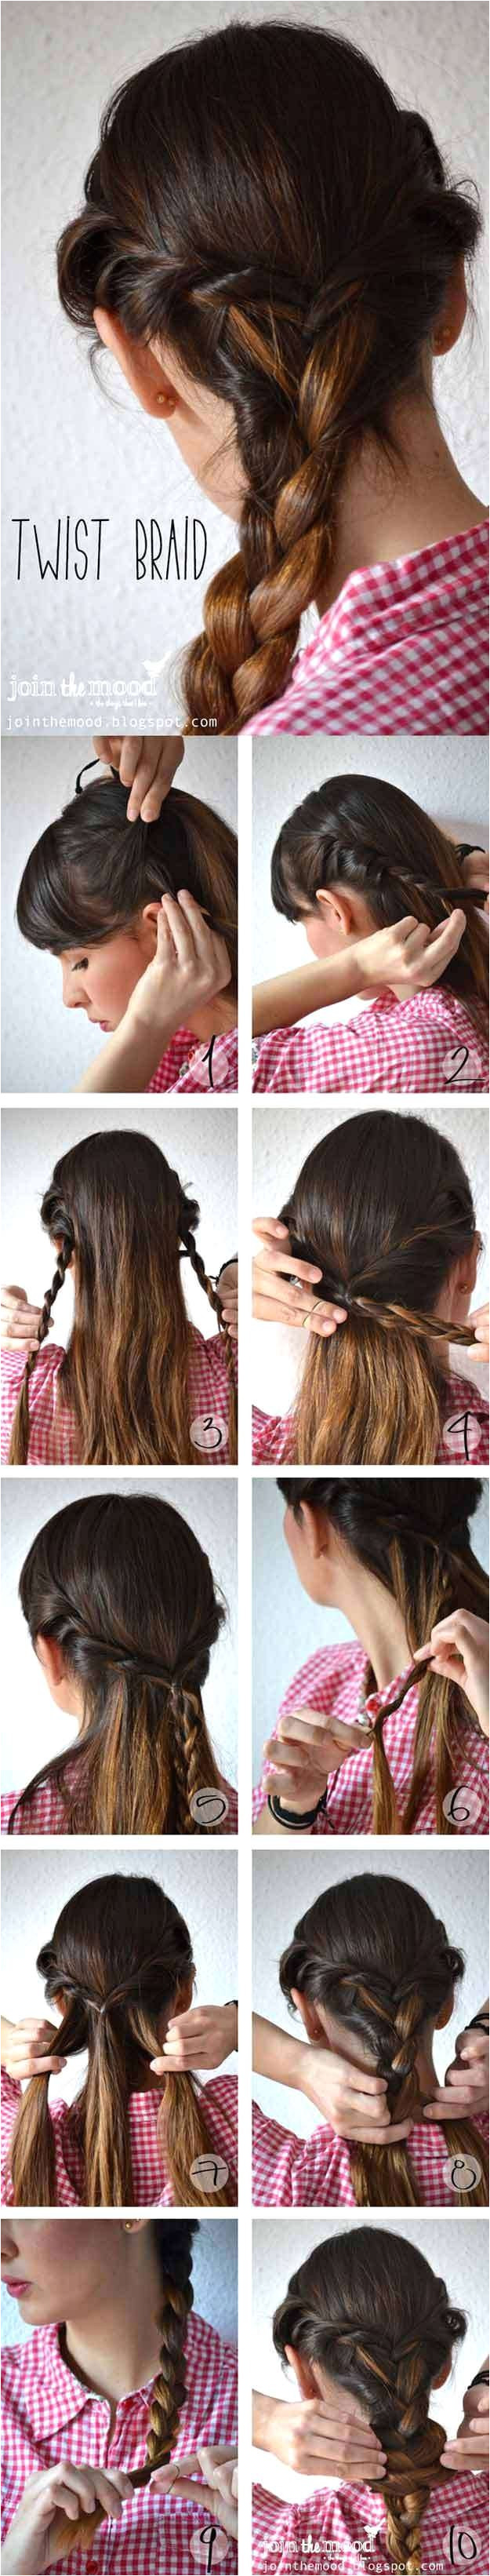 Everyday Easy Hairstyles for Medium Hair Dailymotion Step Cutting for Medium Hair at Home Dailymotion Drive